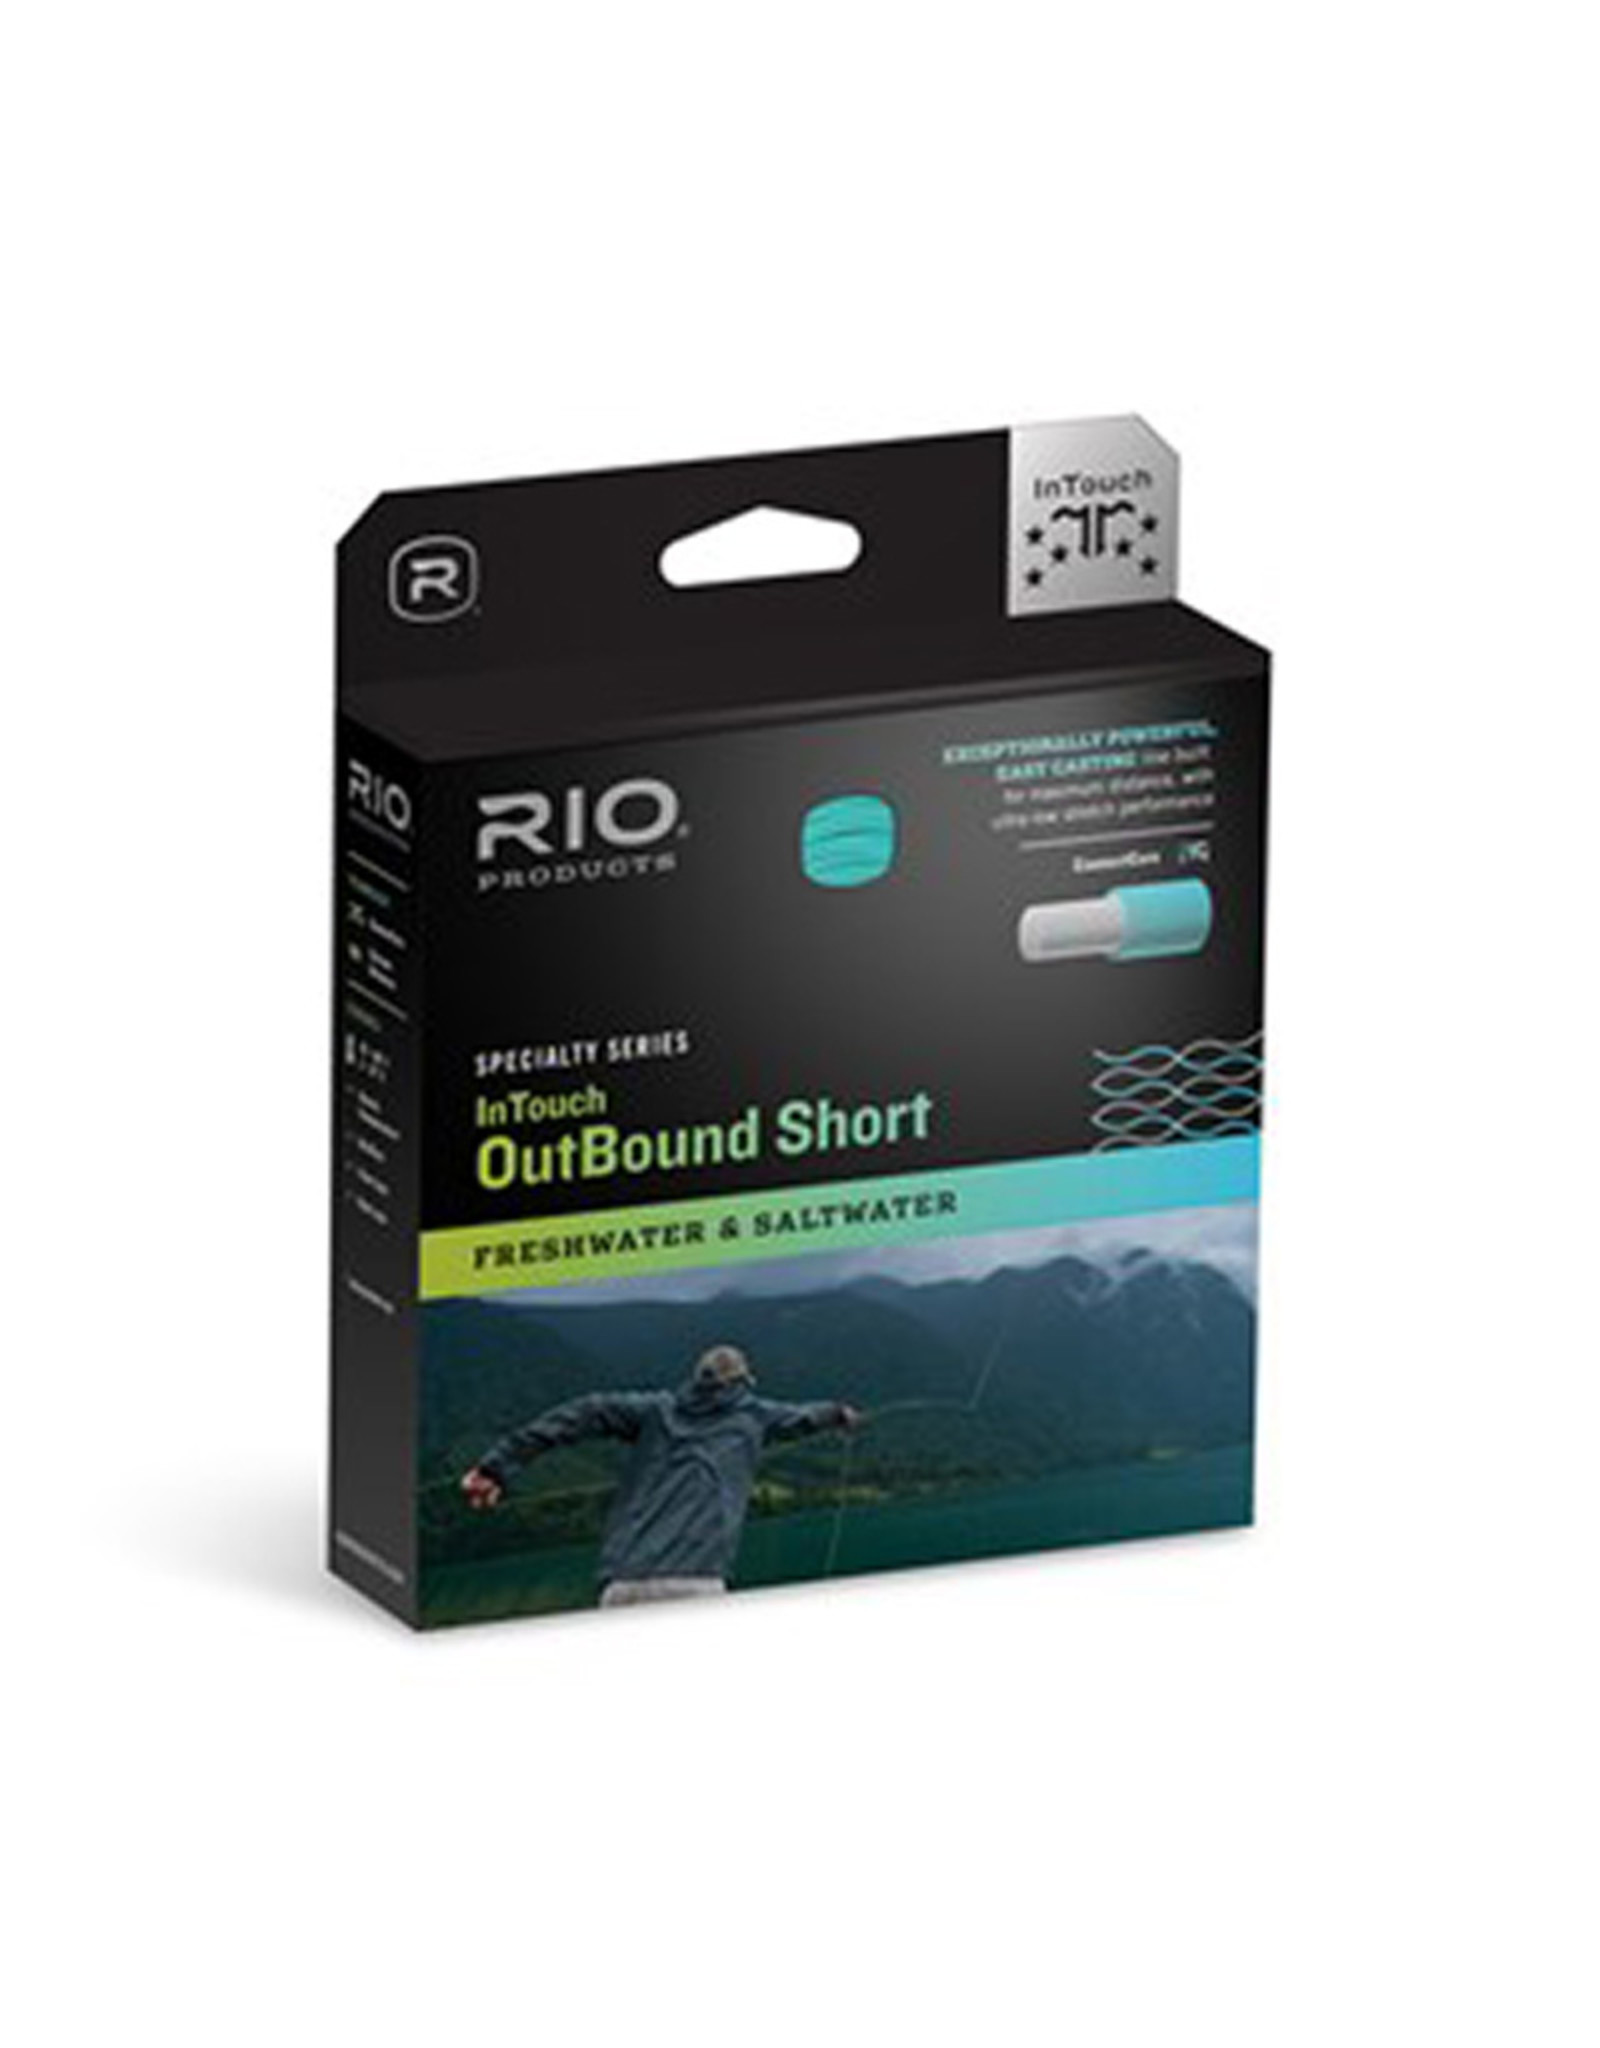 RIO Products InTouch OutBound Short I